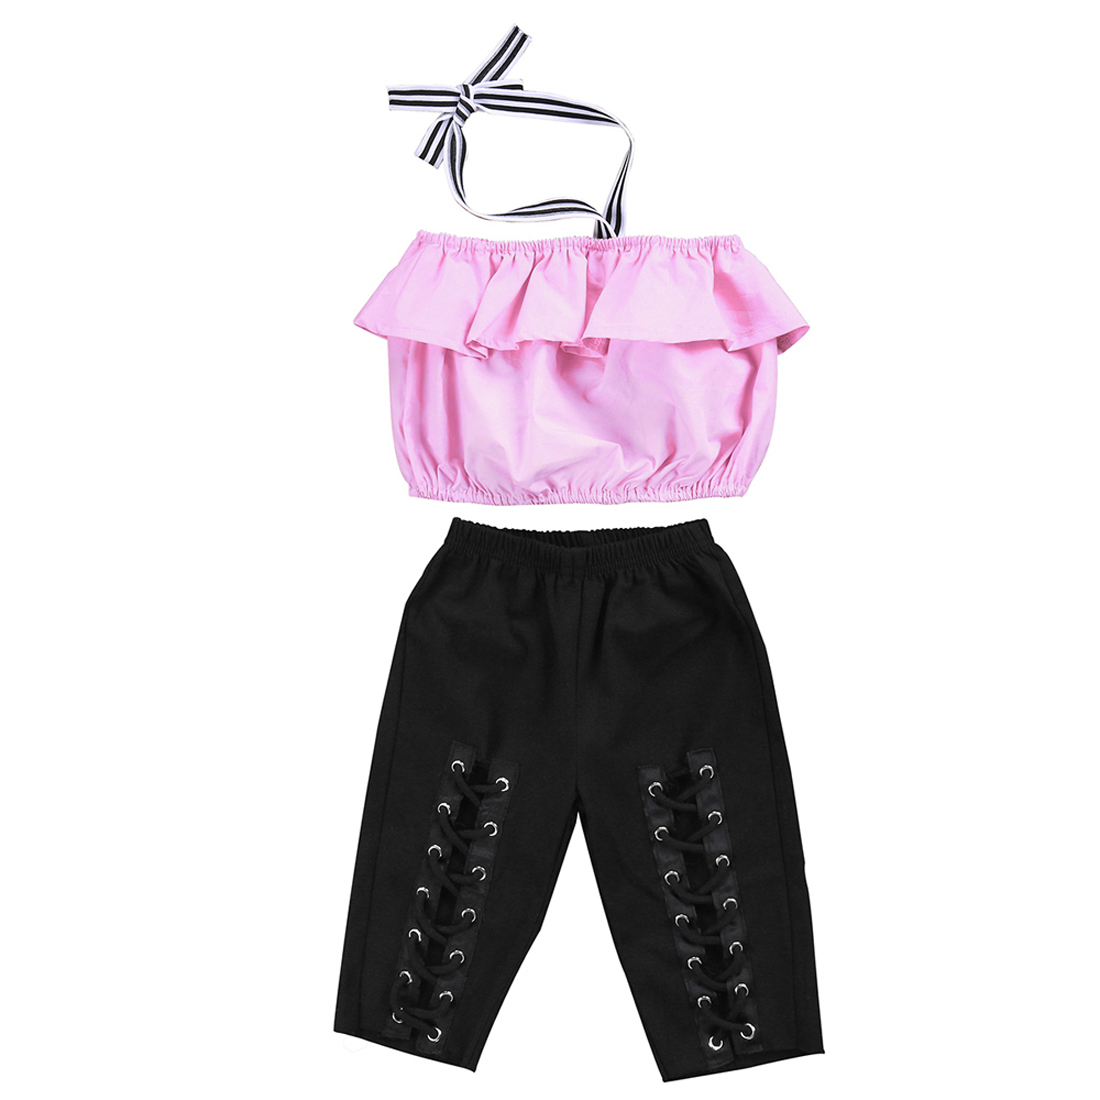 Pudcoco 2Pcs Toddler Baby Kids Girls Off Shoulder Halter Tops Elastic Pants Summer Sleeveless Outfits Clothes Sets